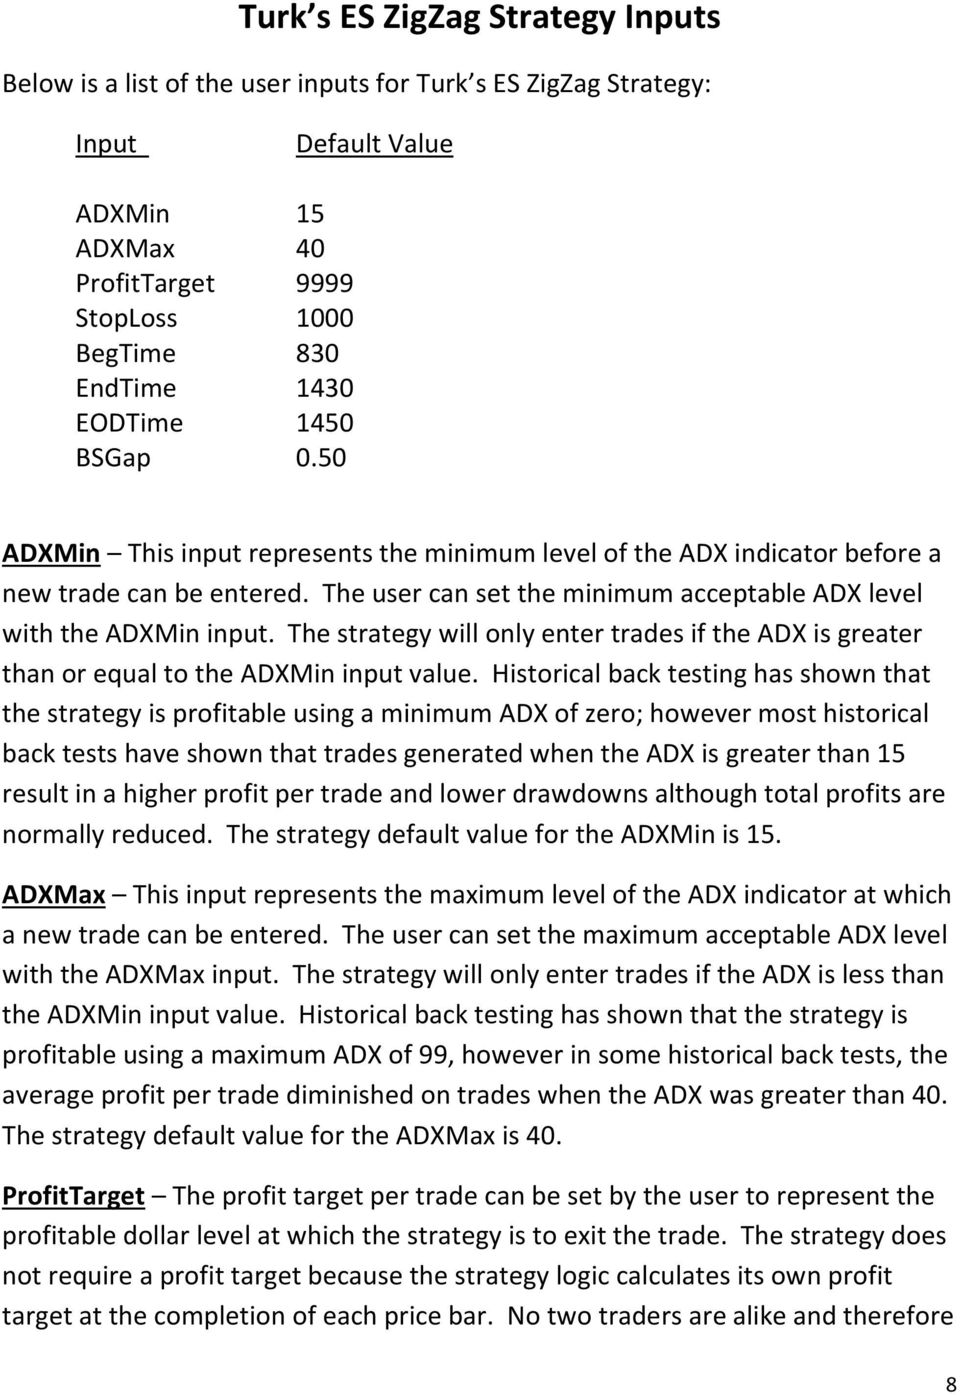 The strategy will only enter trades if the ADX is greater than or equal to the ADXMin input value.